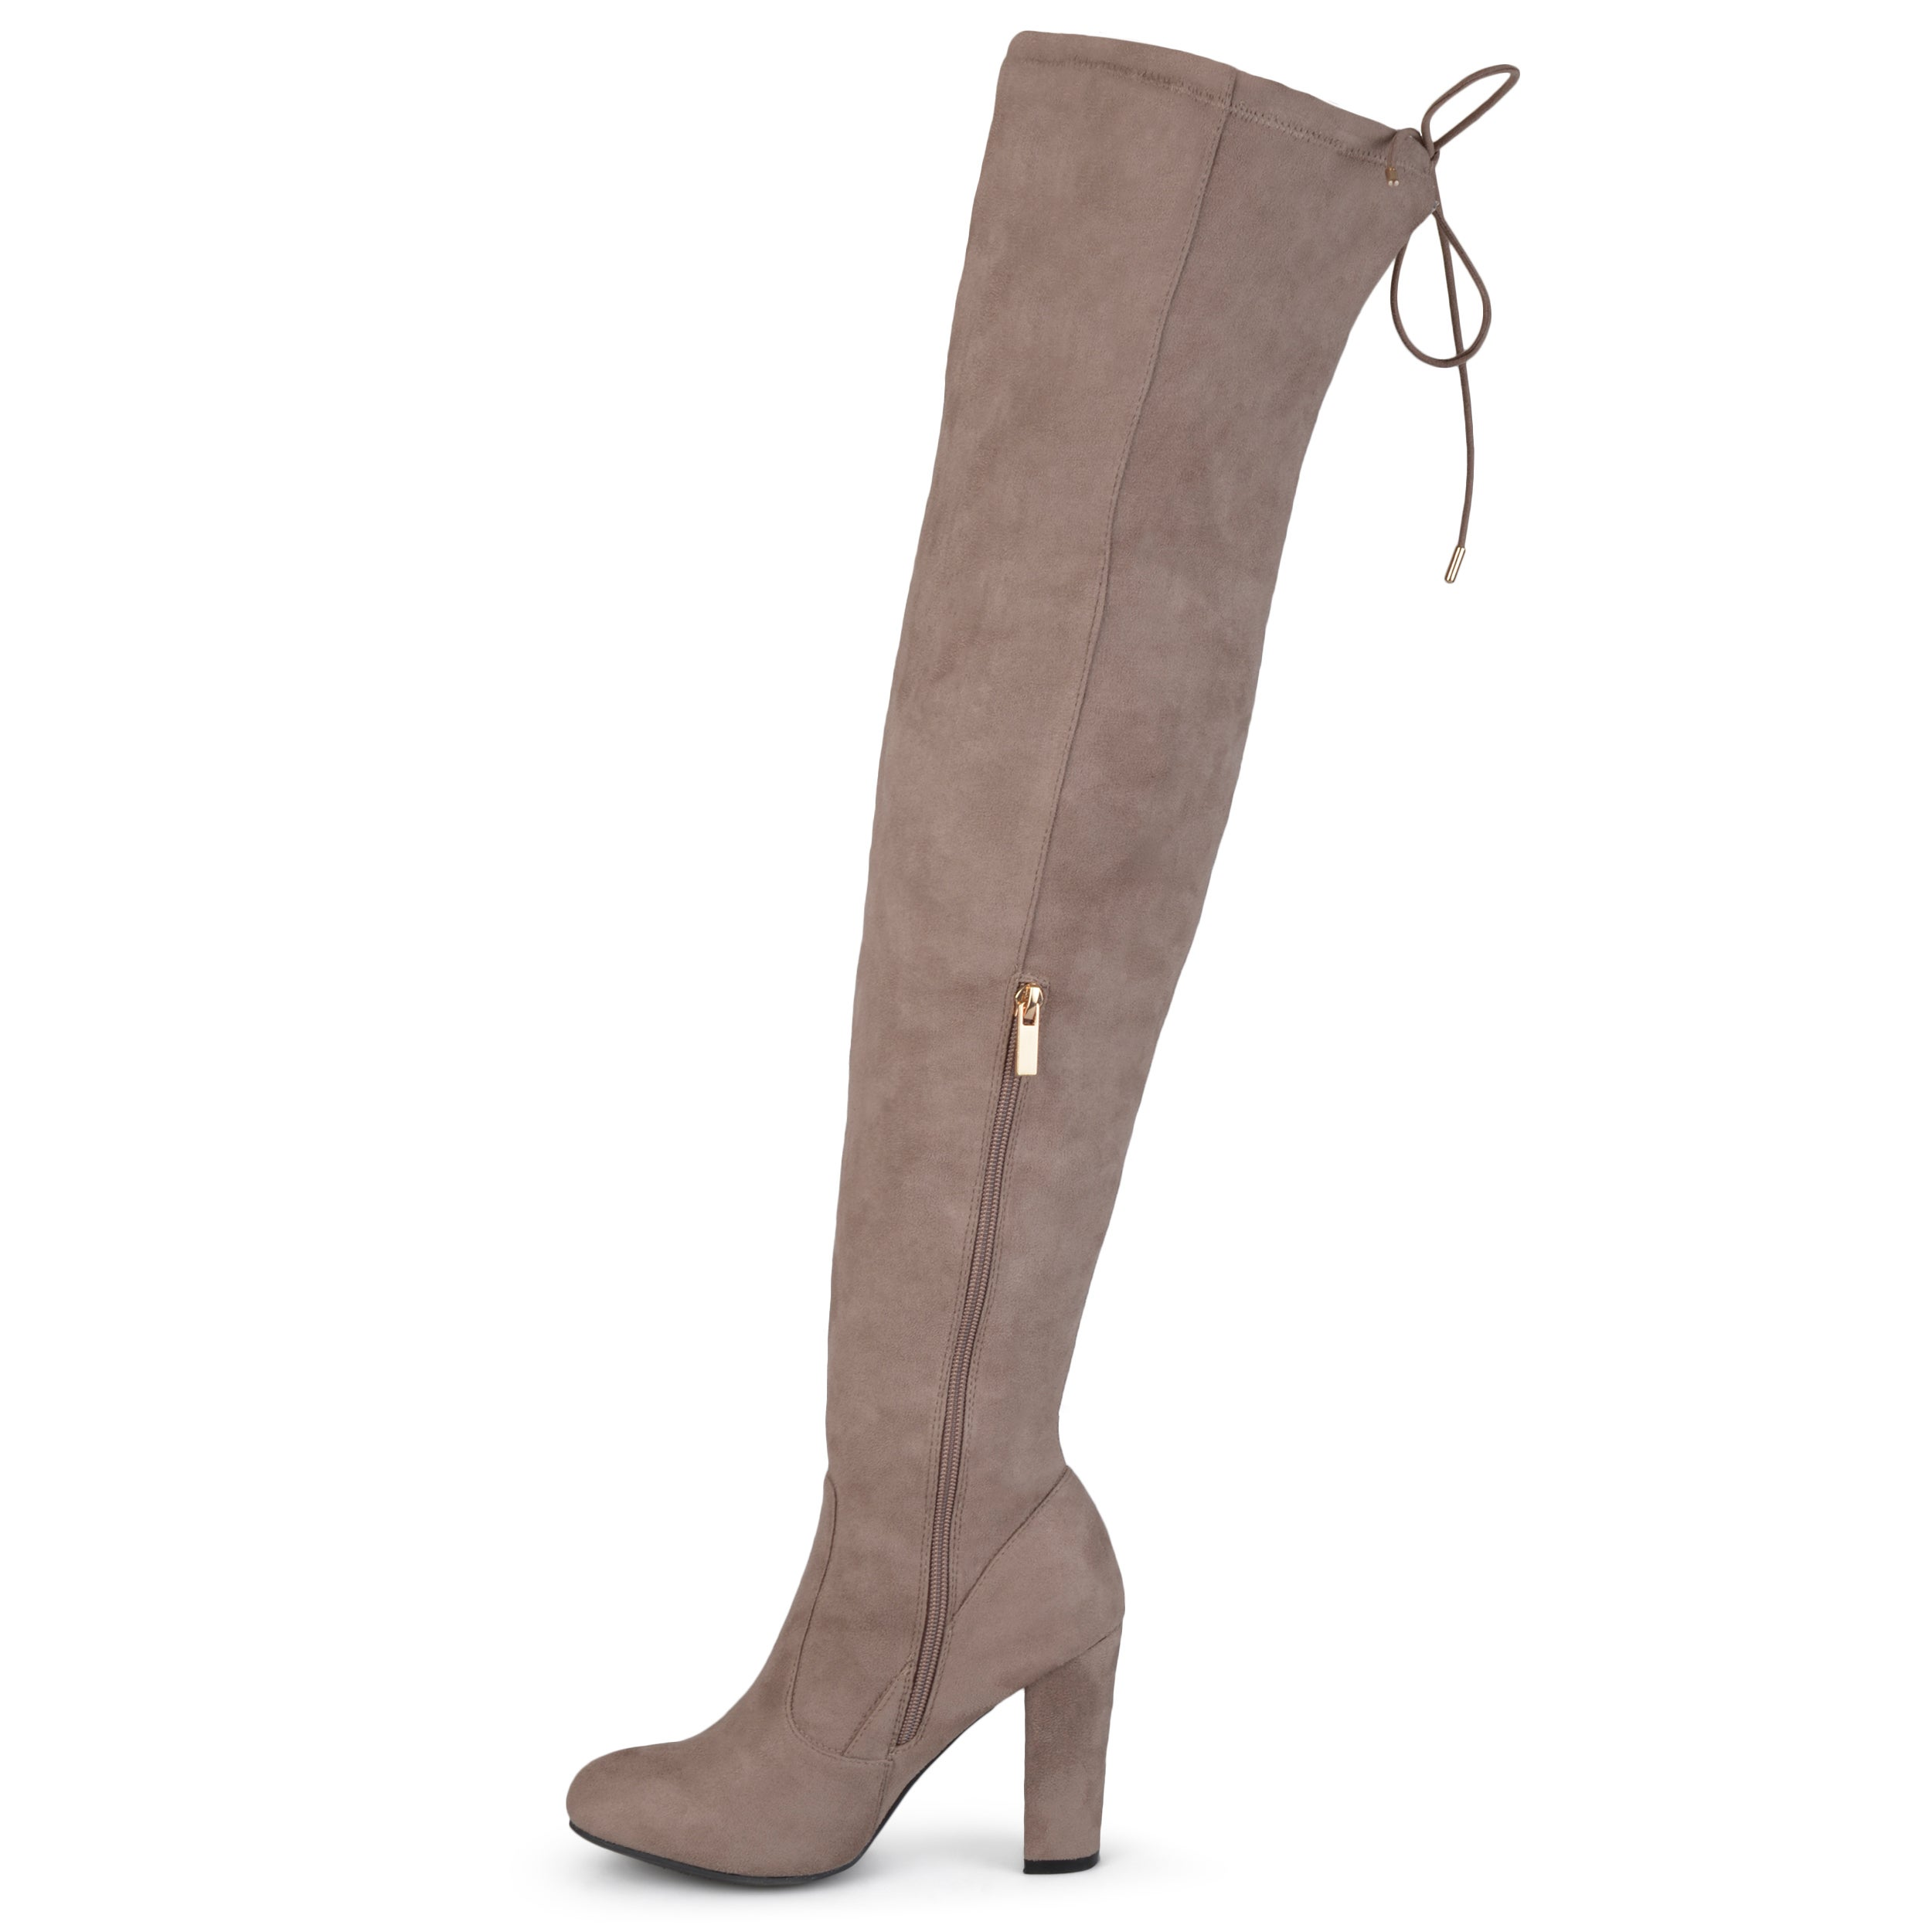 062eacbf9cf Shop Journee Collection Women s  Maya  Faux Suede Regular and Wide Calf Over -the-knee Boots - Free Shipping Today - Overstock - 12134750